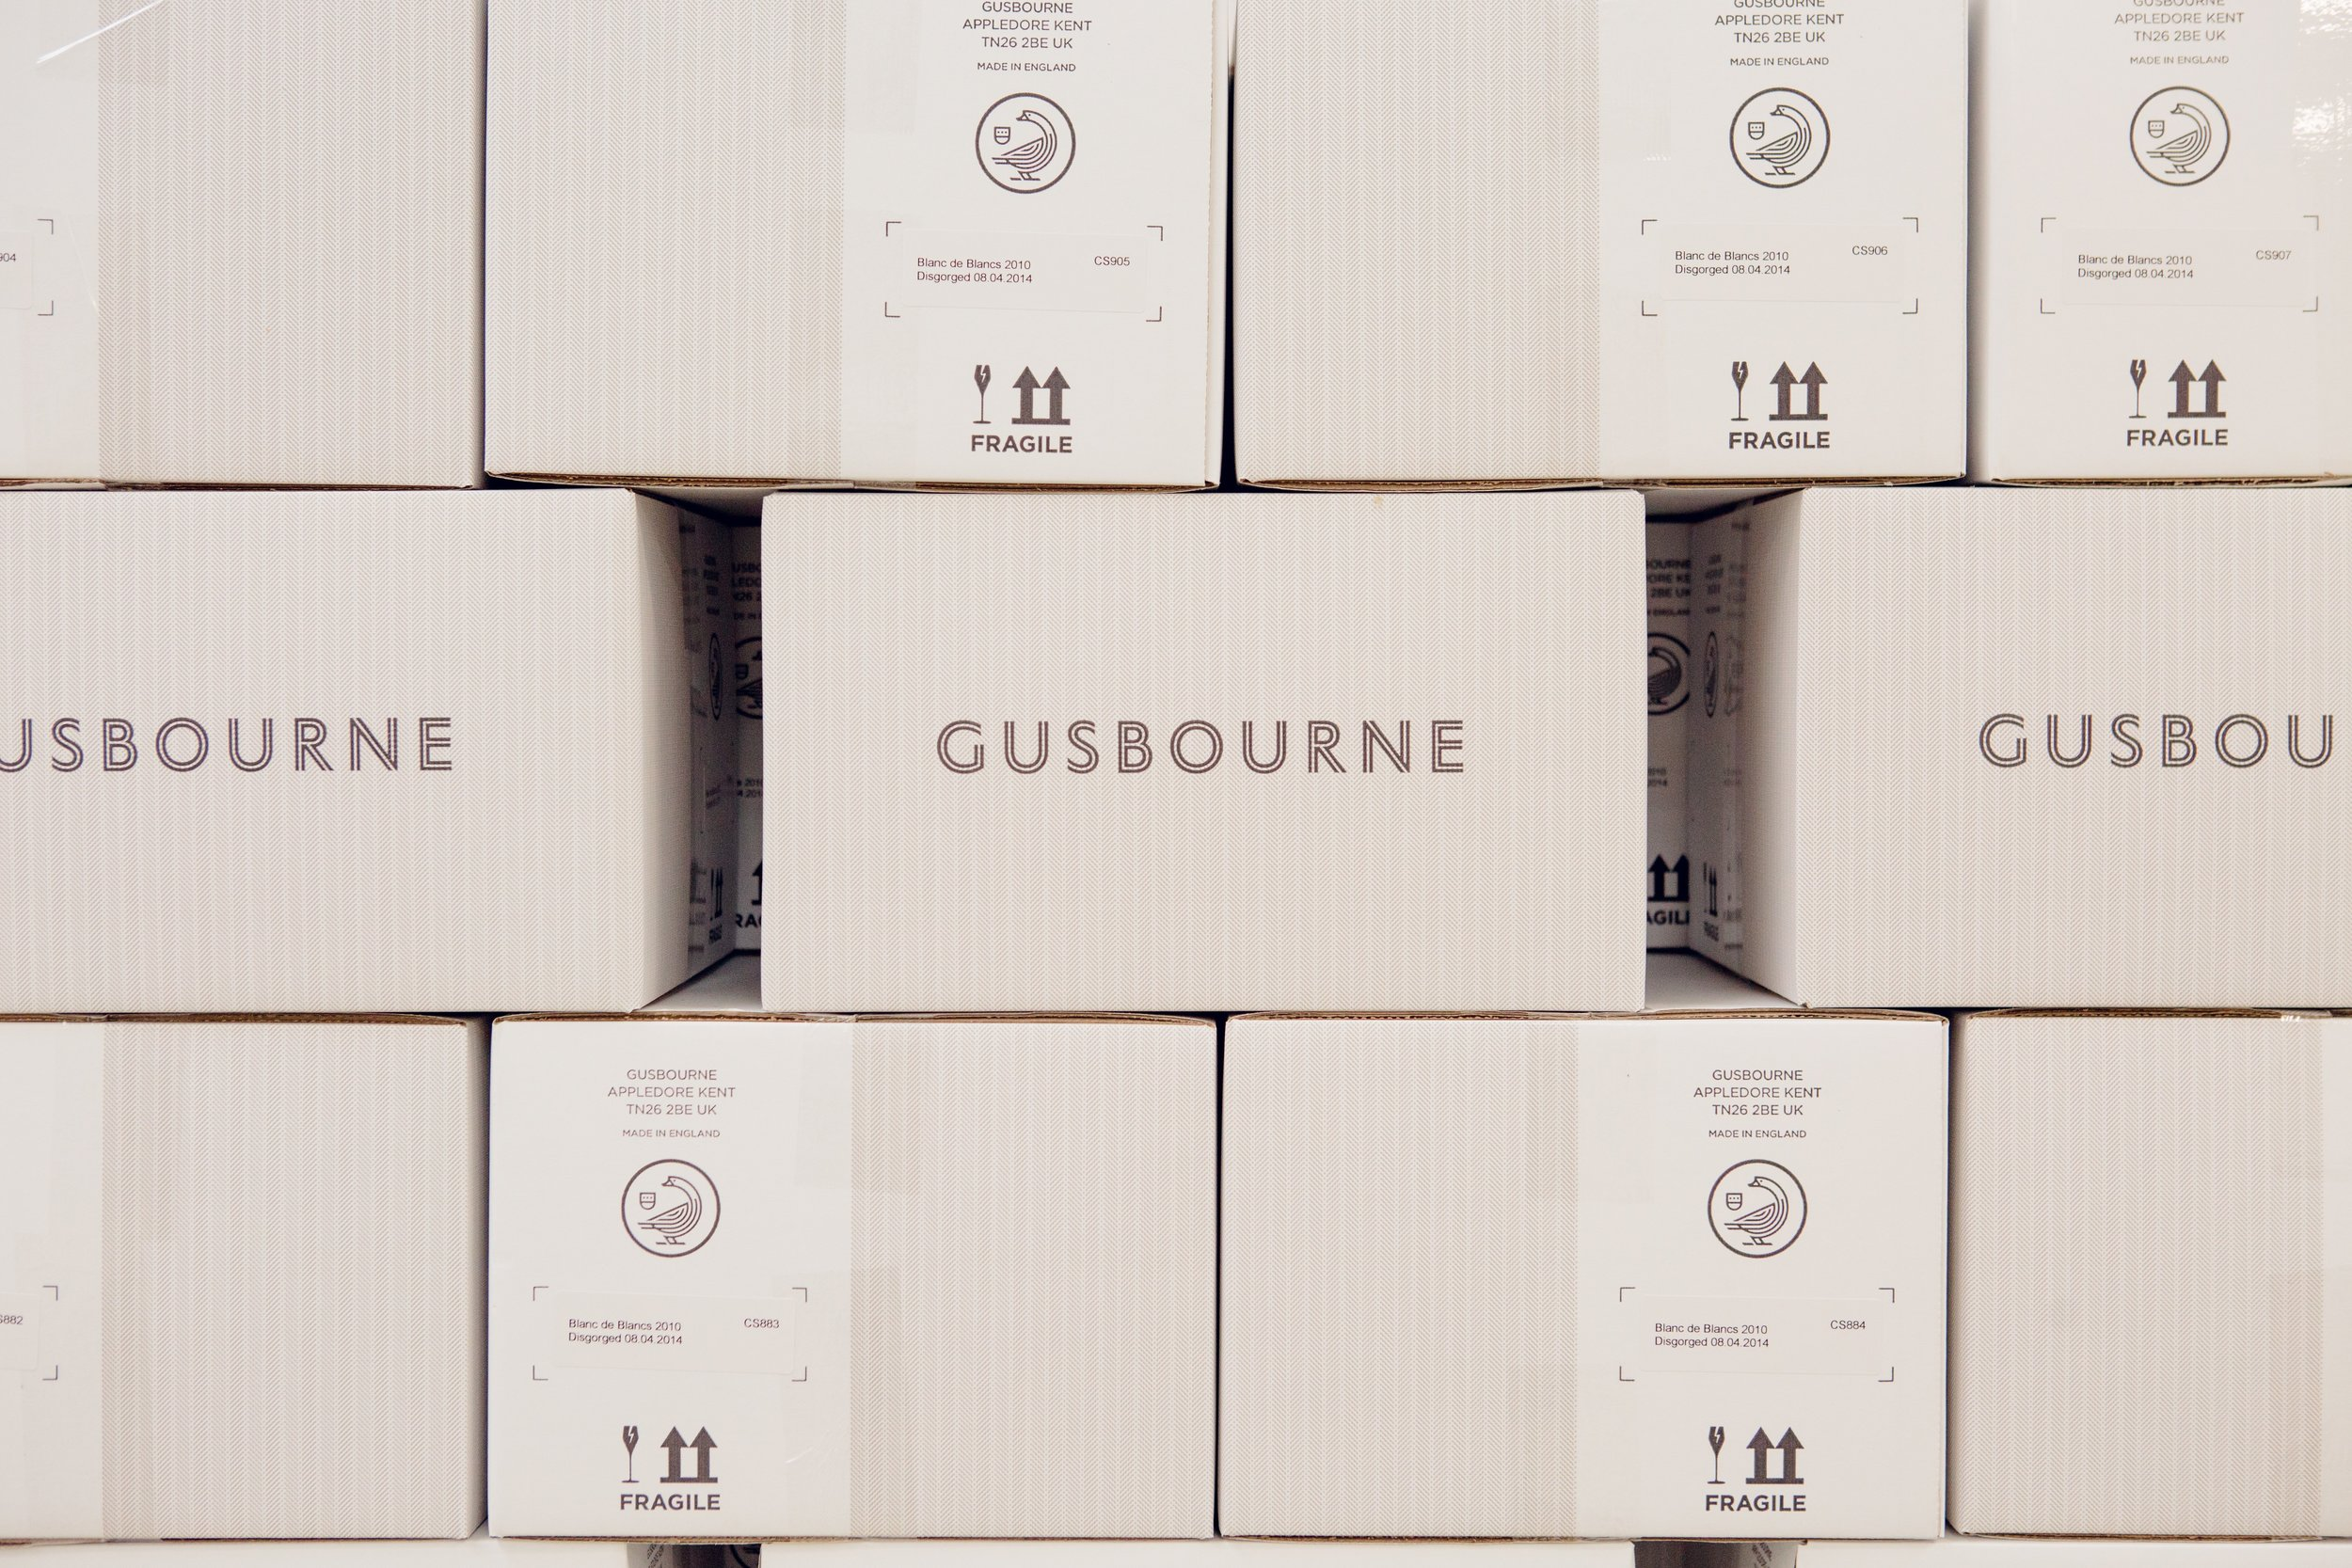 Image: Gusbourne Winery